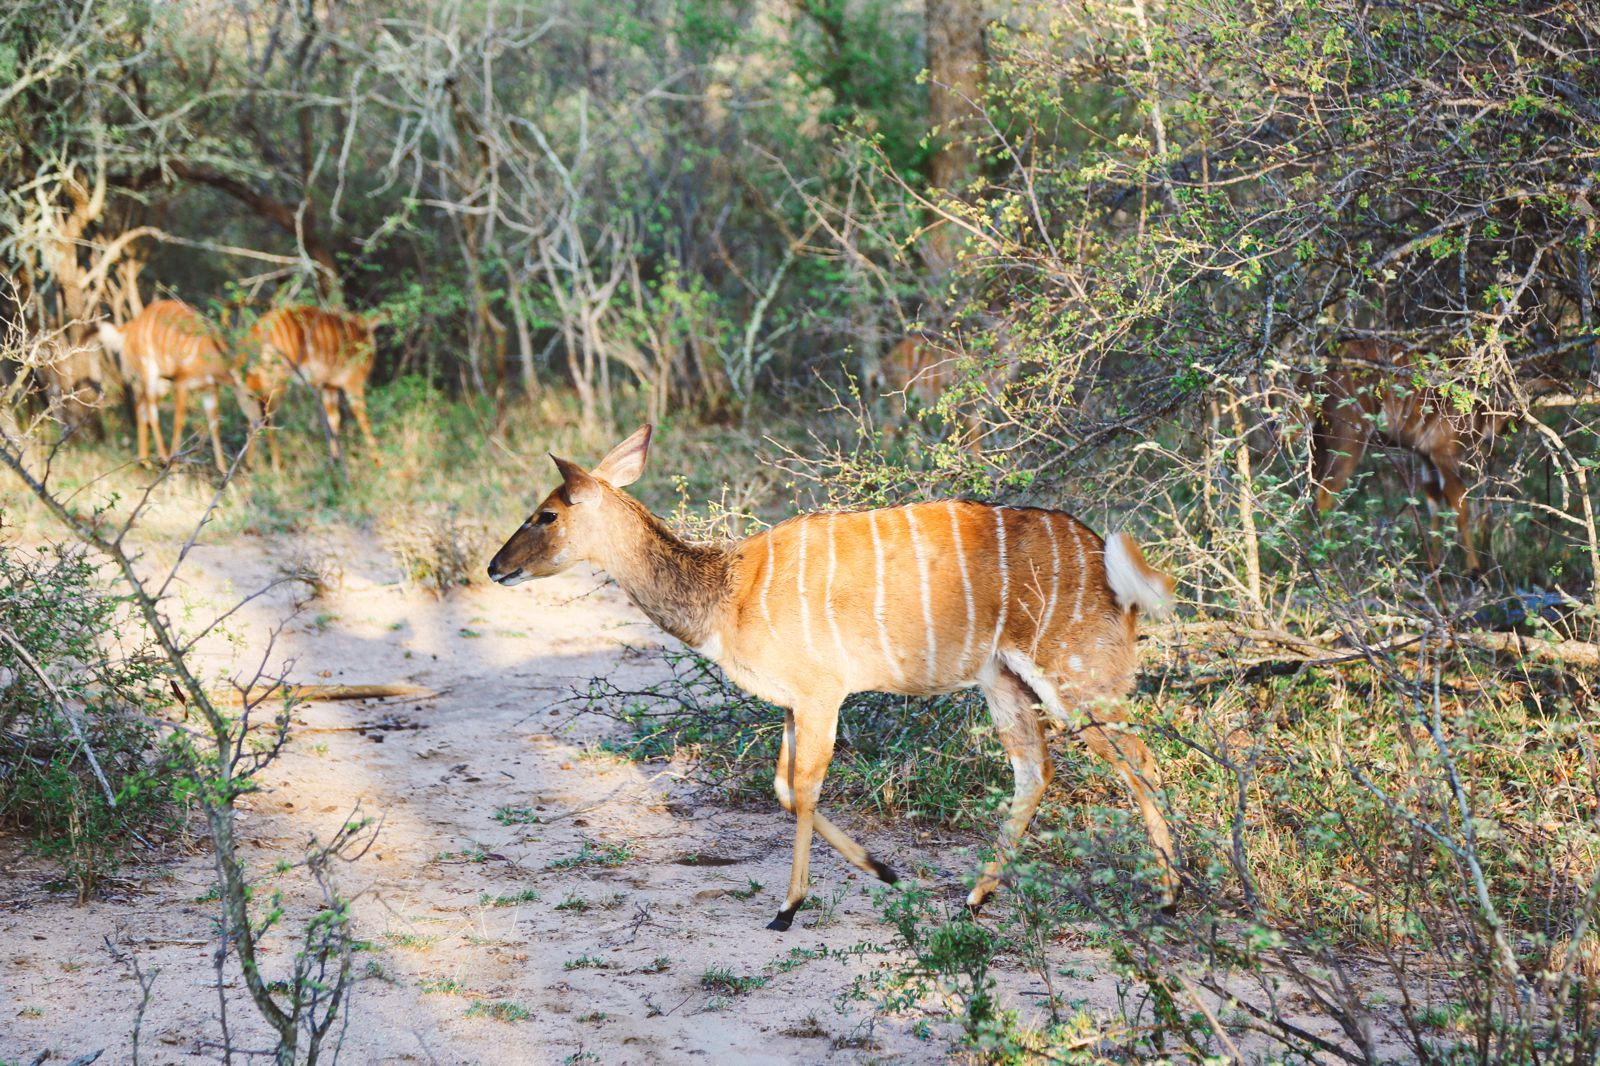 Midnight Lions, Skittish Giraffes And The Deadliest Of The Safari Big 5 In South Africa (1)